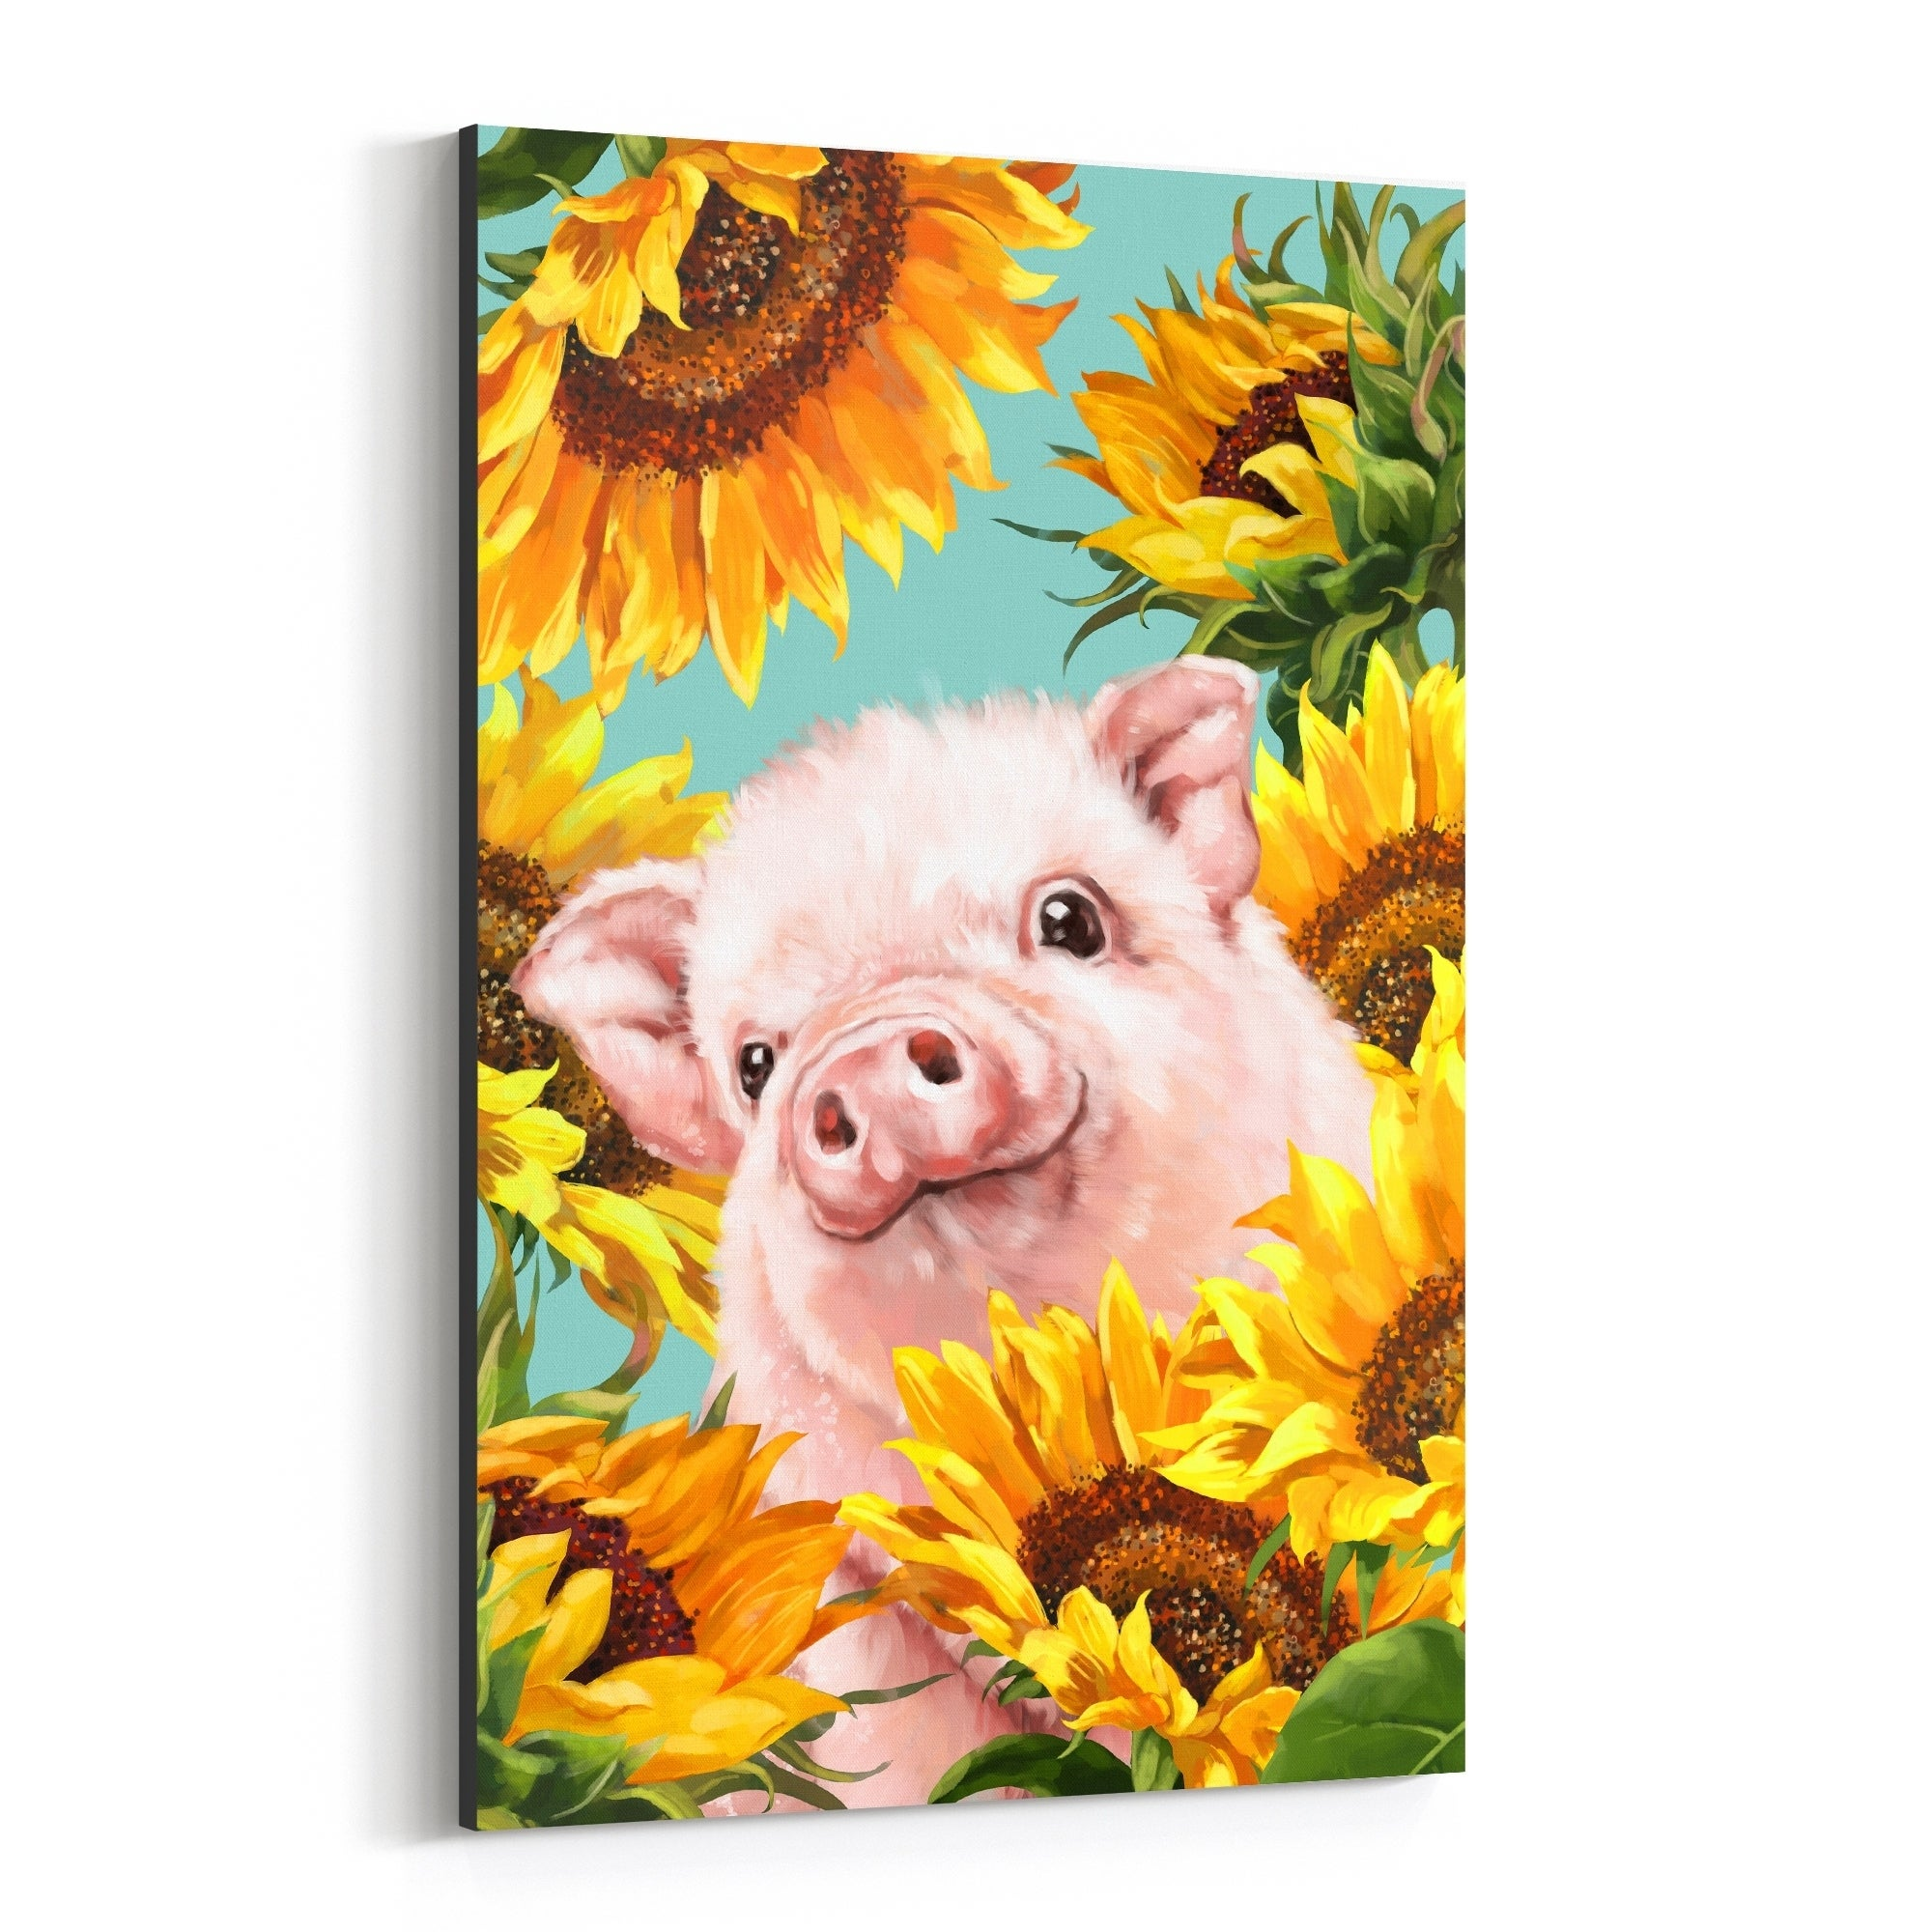 HAPPY PIGS CANVAS PRINT PICTURE WALL ART DESIGN SET OF 4 FREE DELIVERY